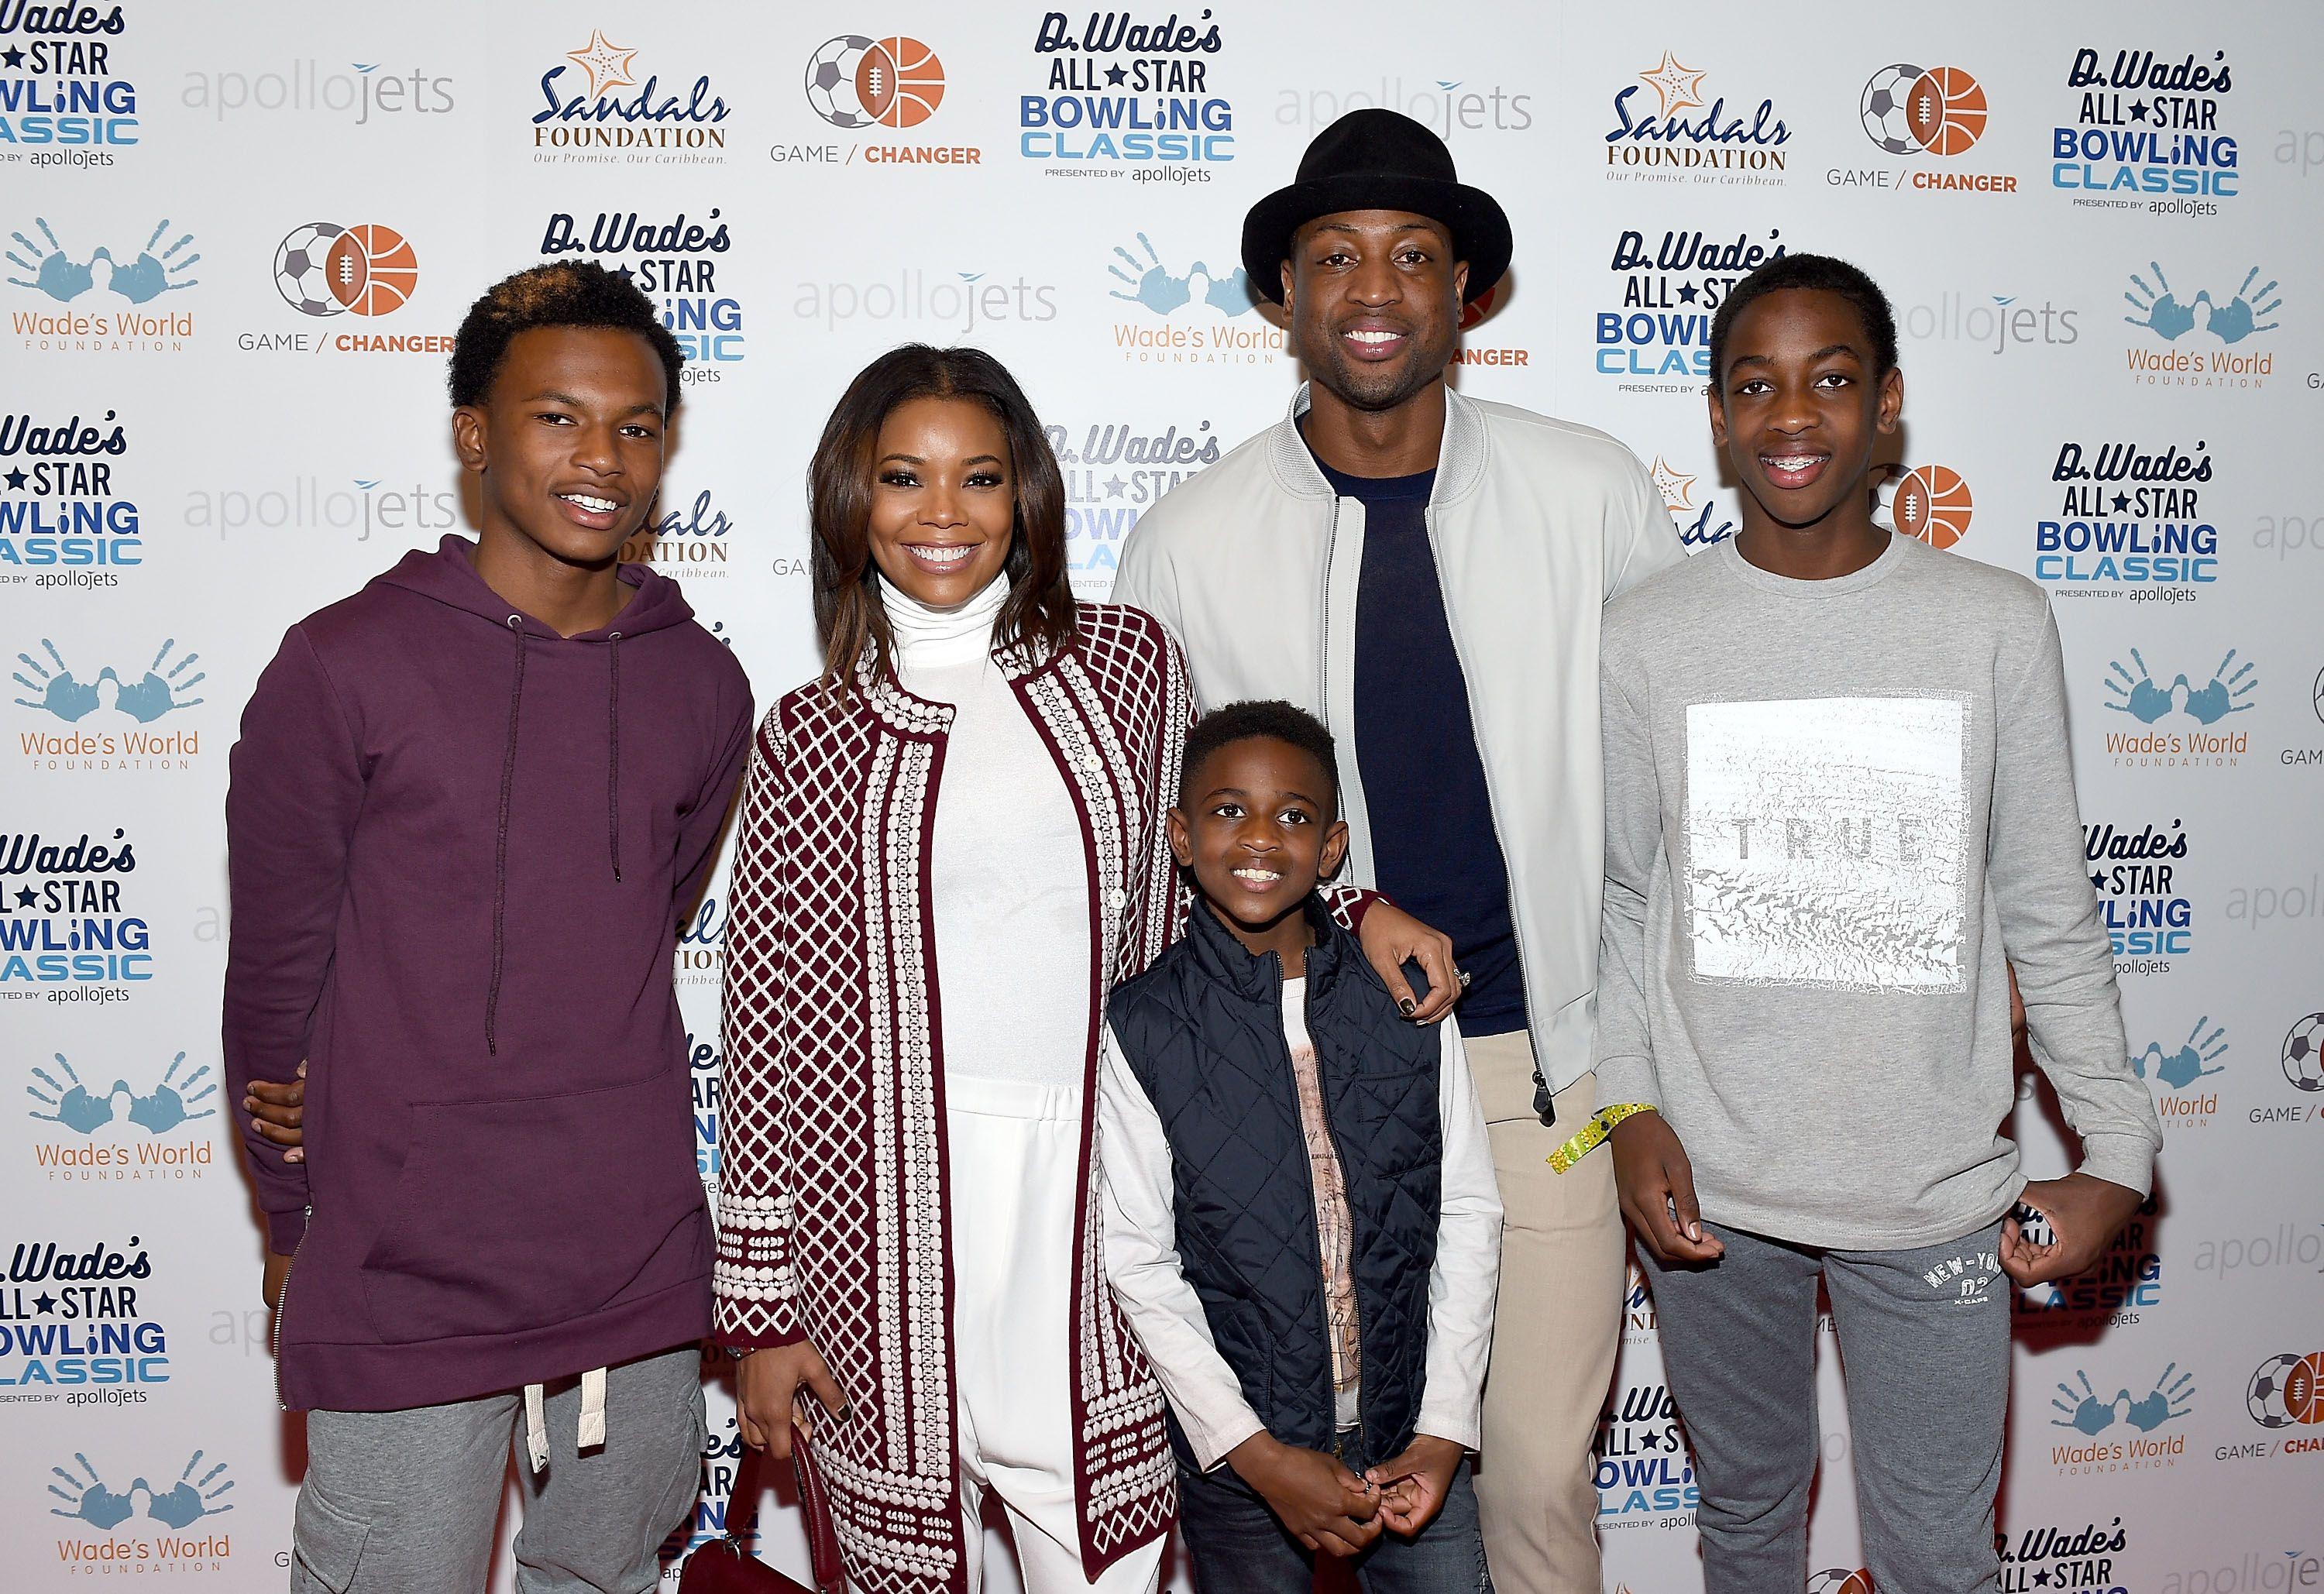 Dahveon Morris, Gabrielle Union, Zion Wade, Dwyane Wade, and Zaire Wade a the DWade All Star Bowling Classic in Toronto in 2016 | Source: Getty Images